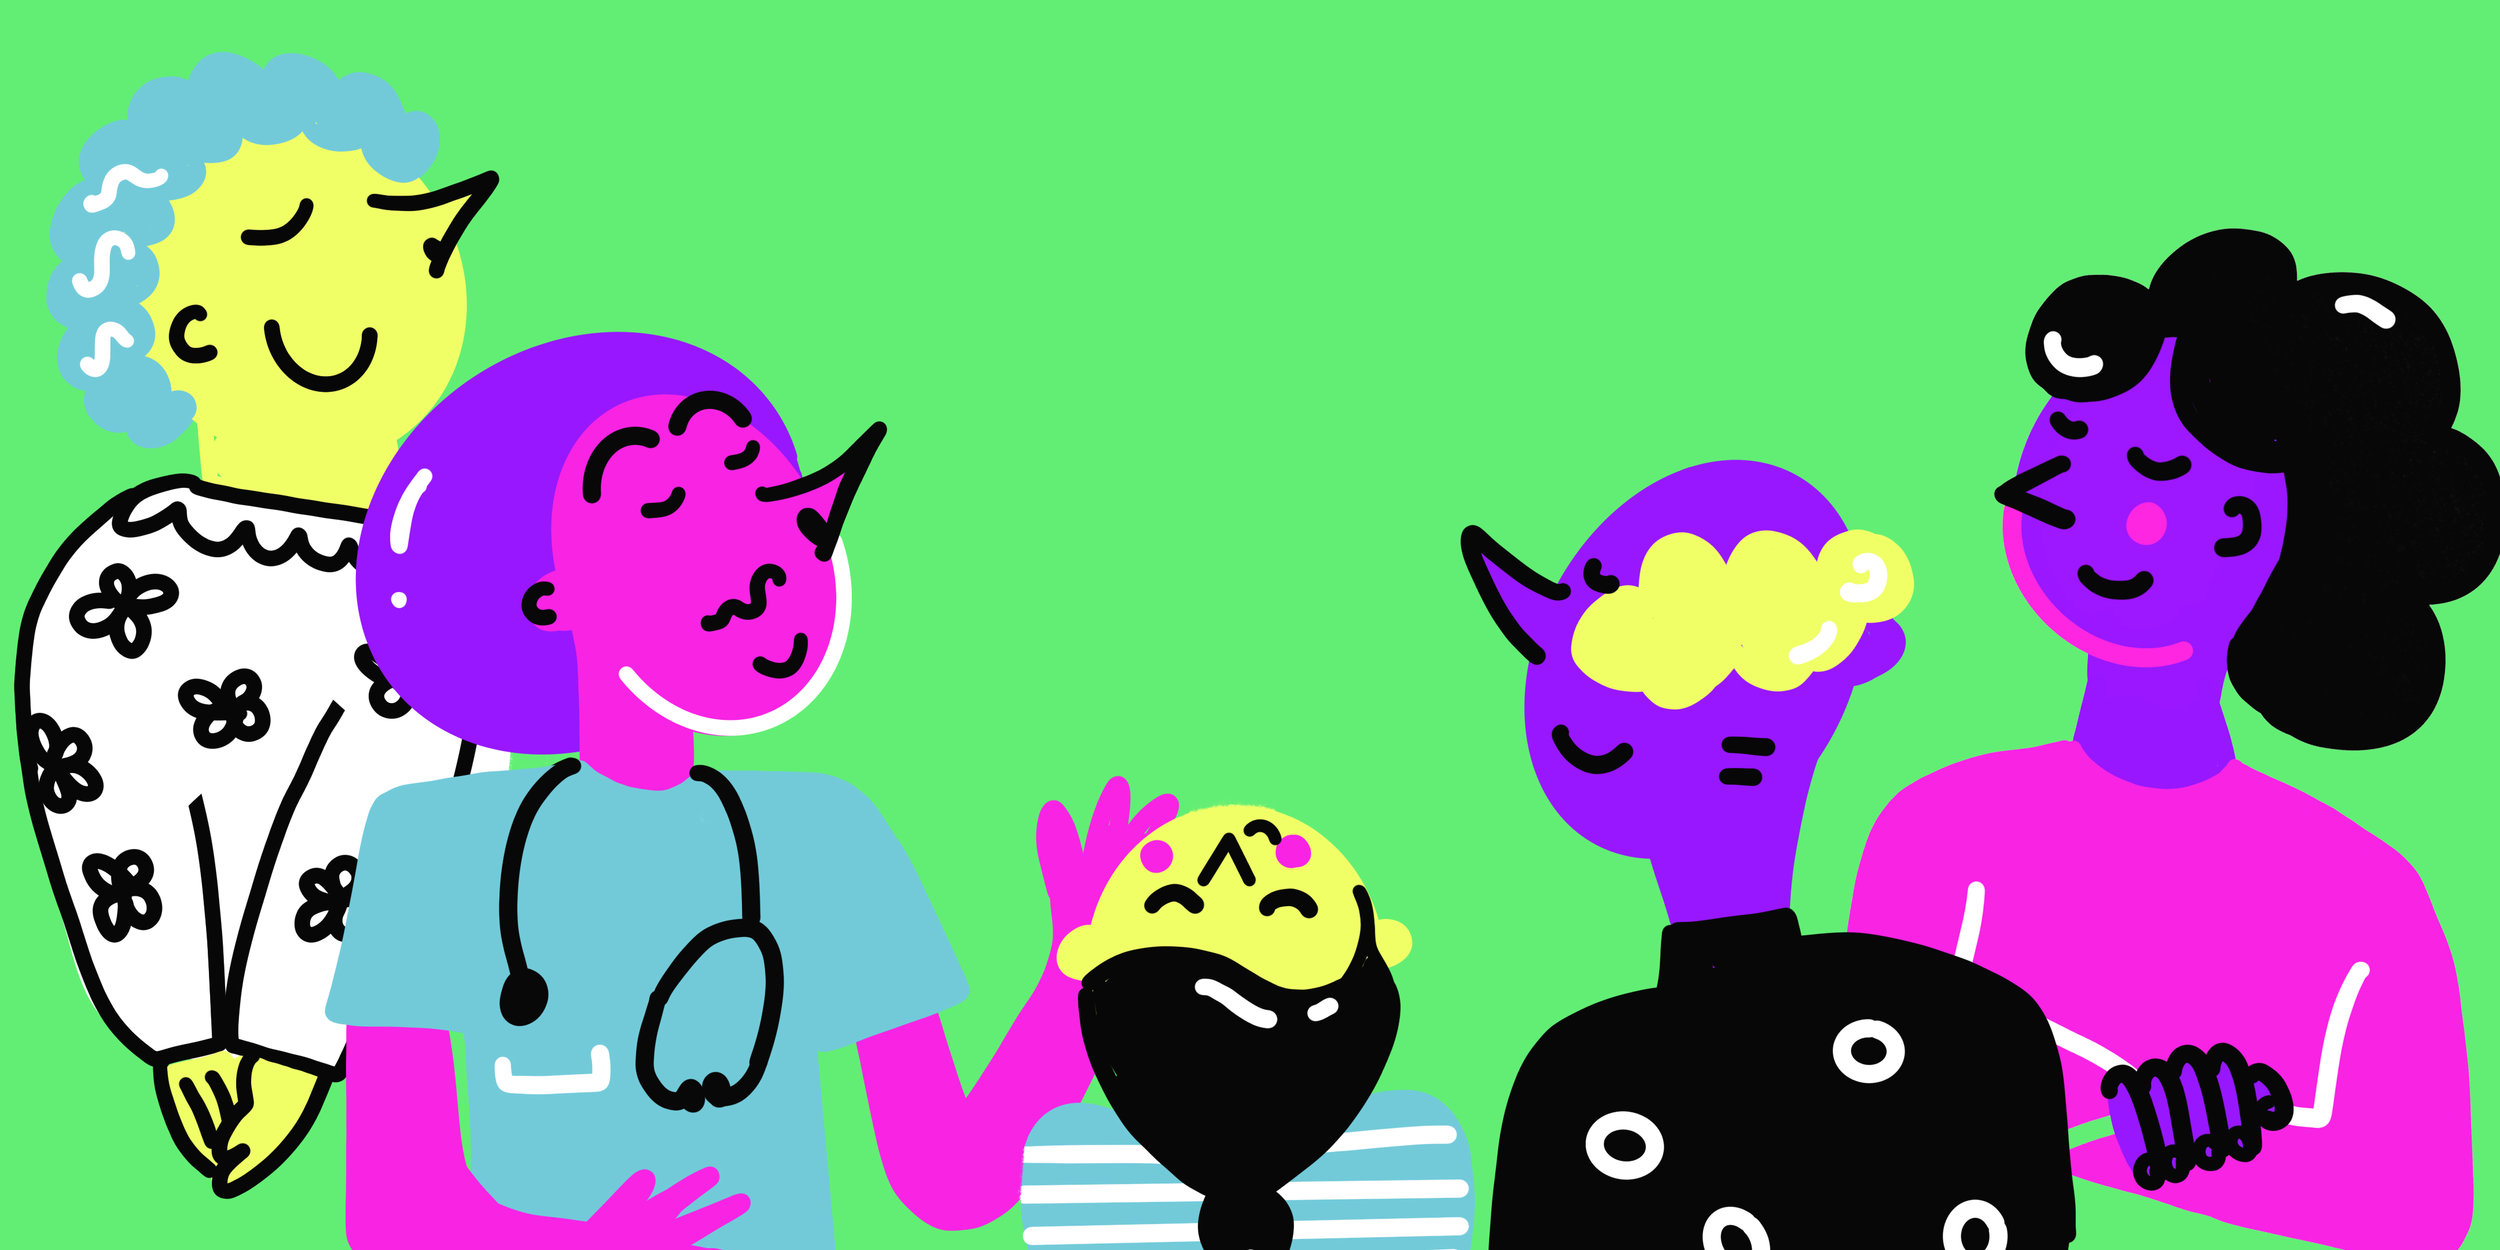 Five hand drawn characters smelling the air on a green background